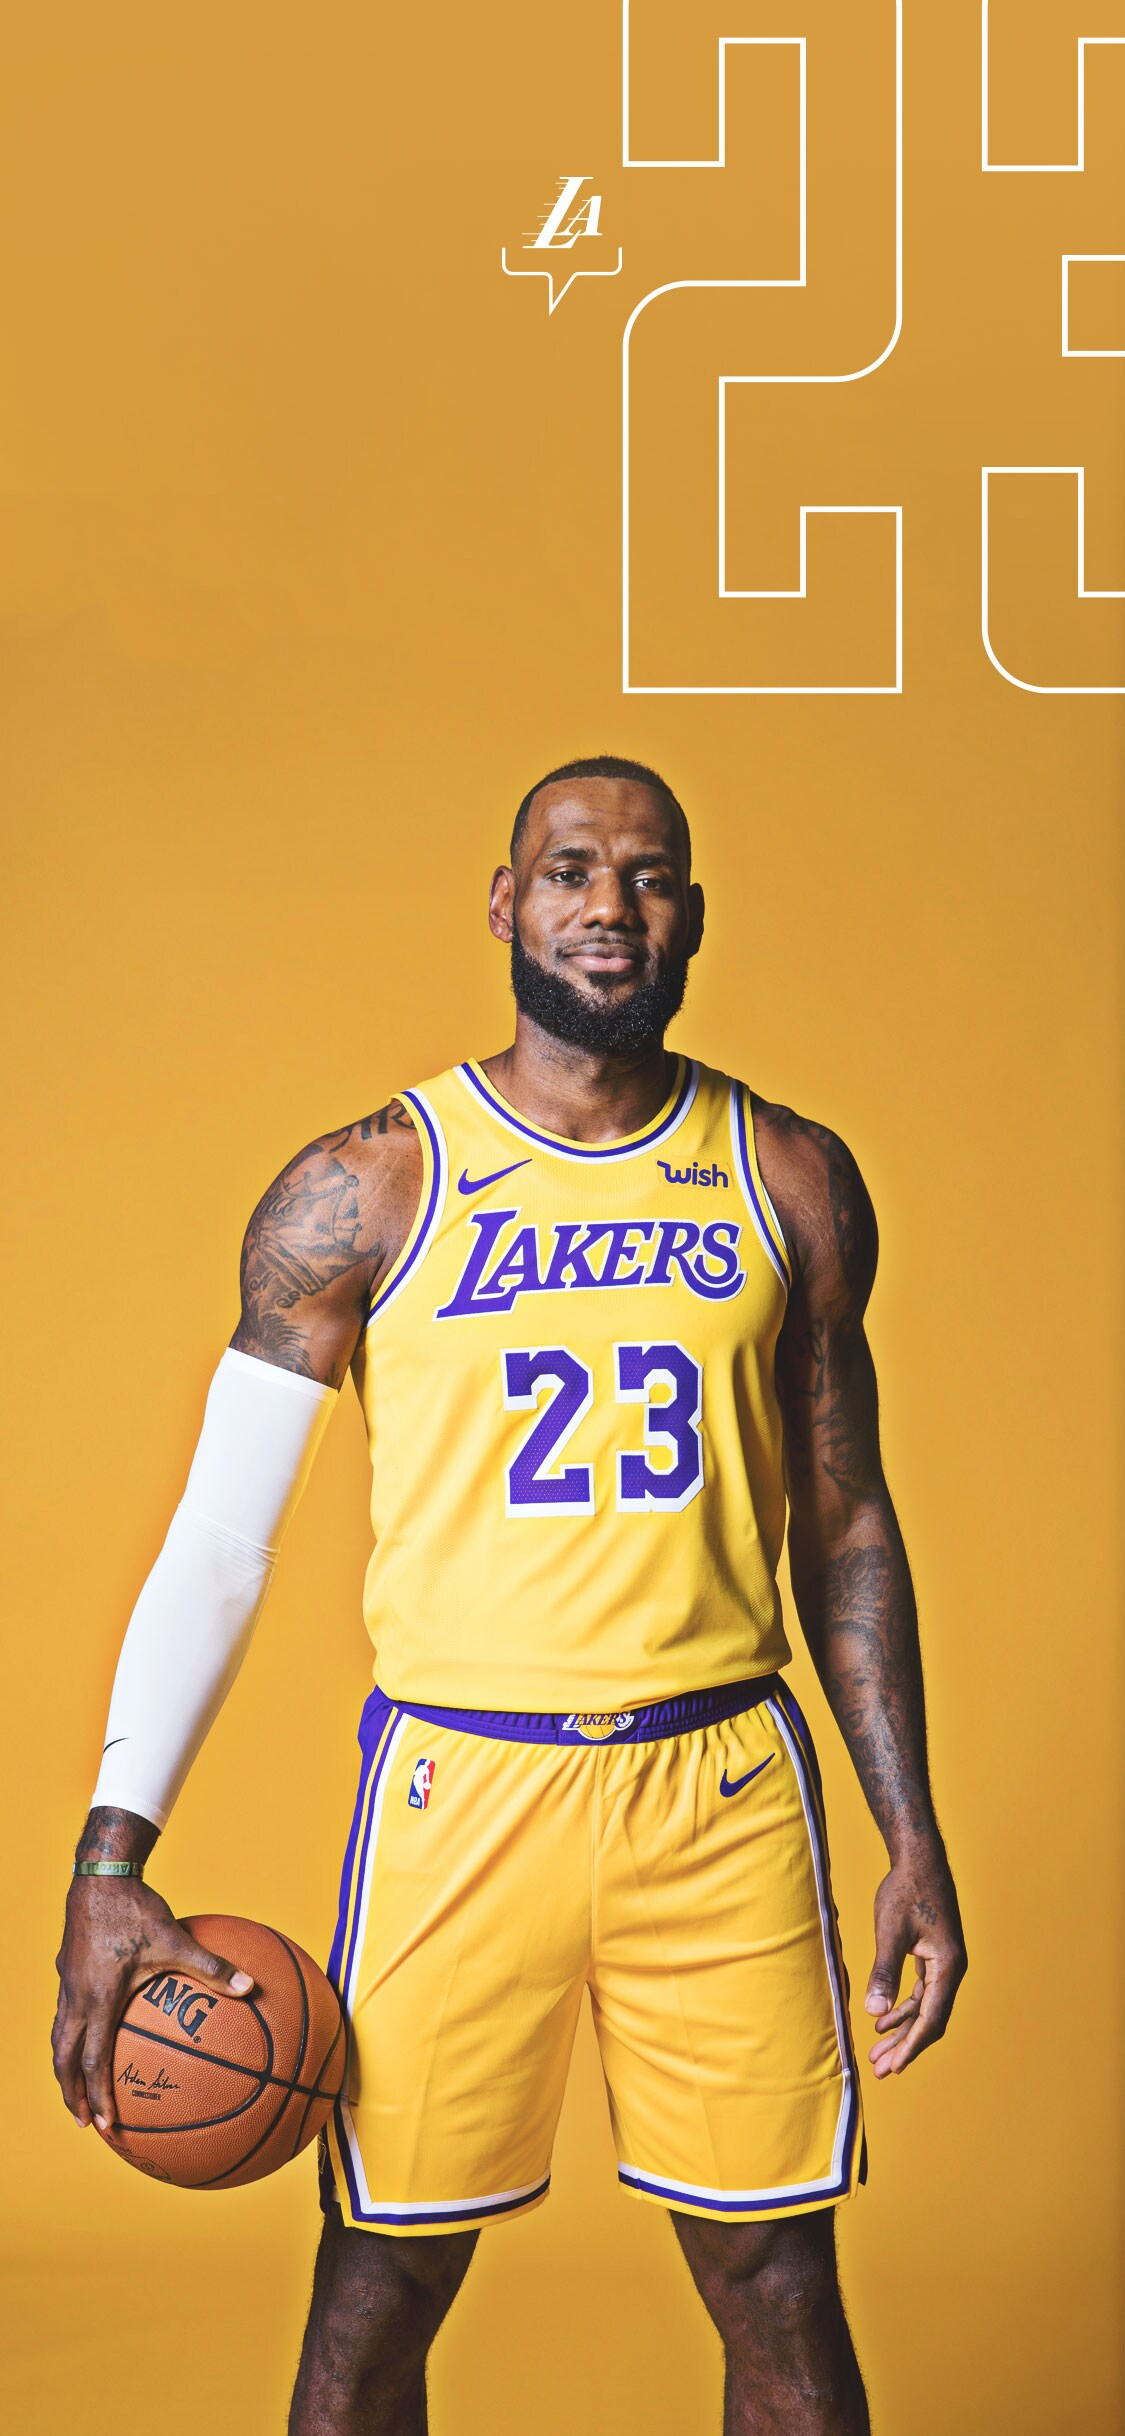 23 lakers